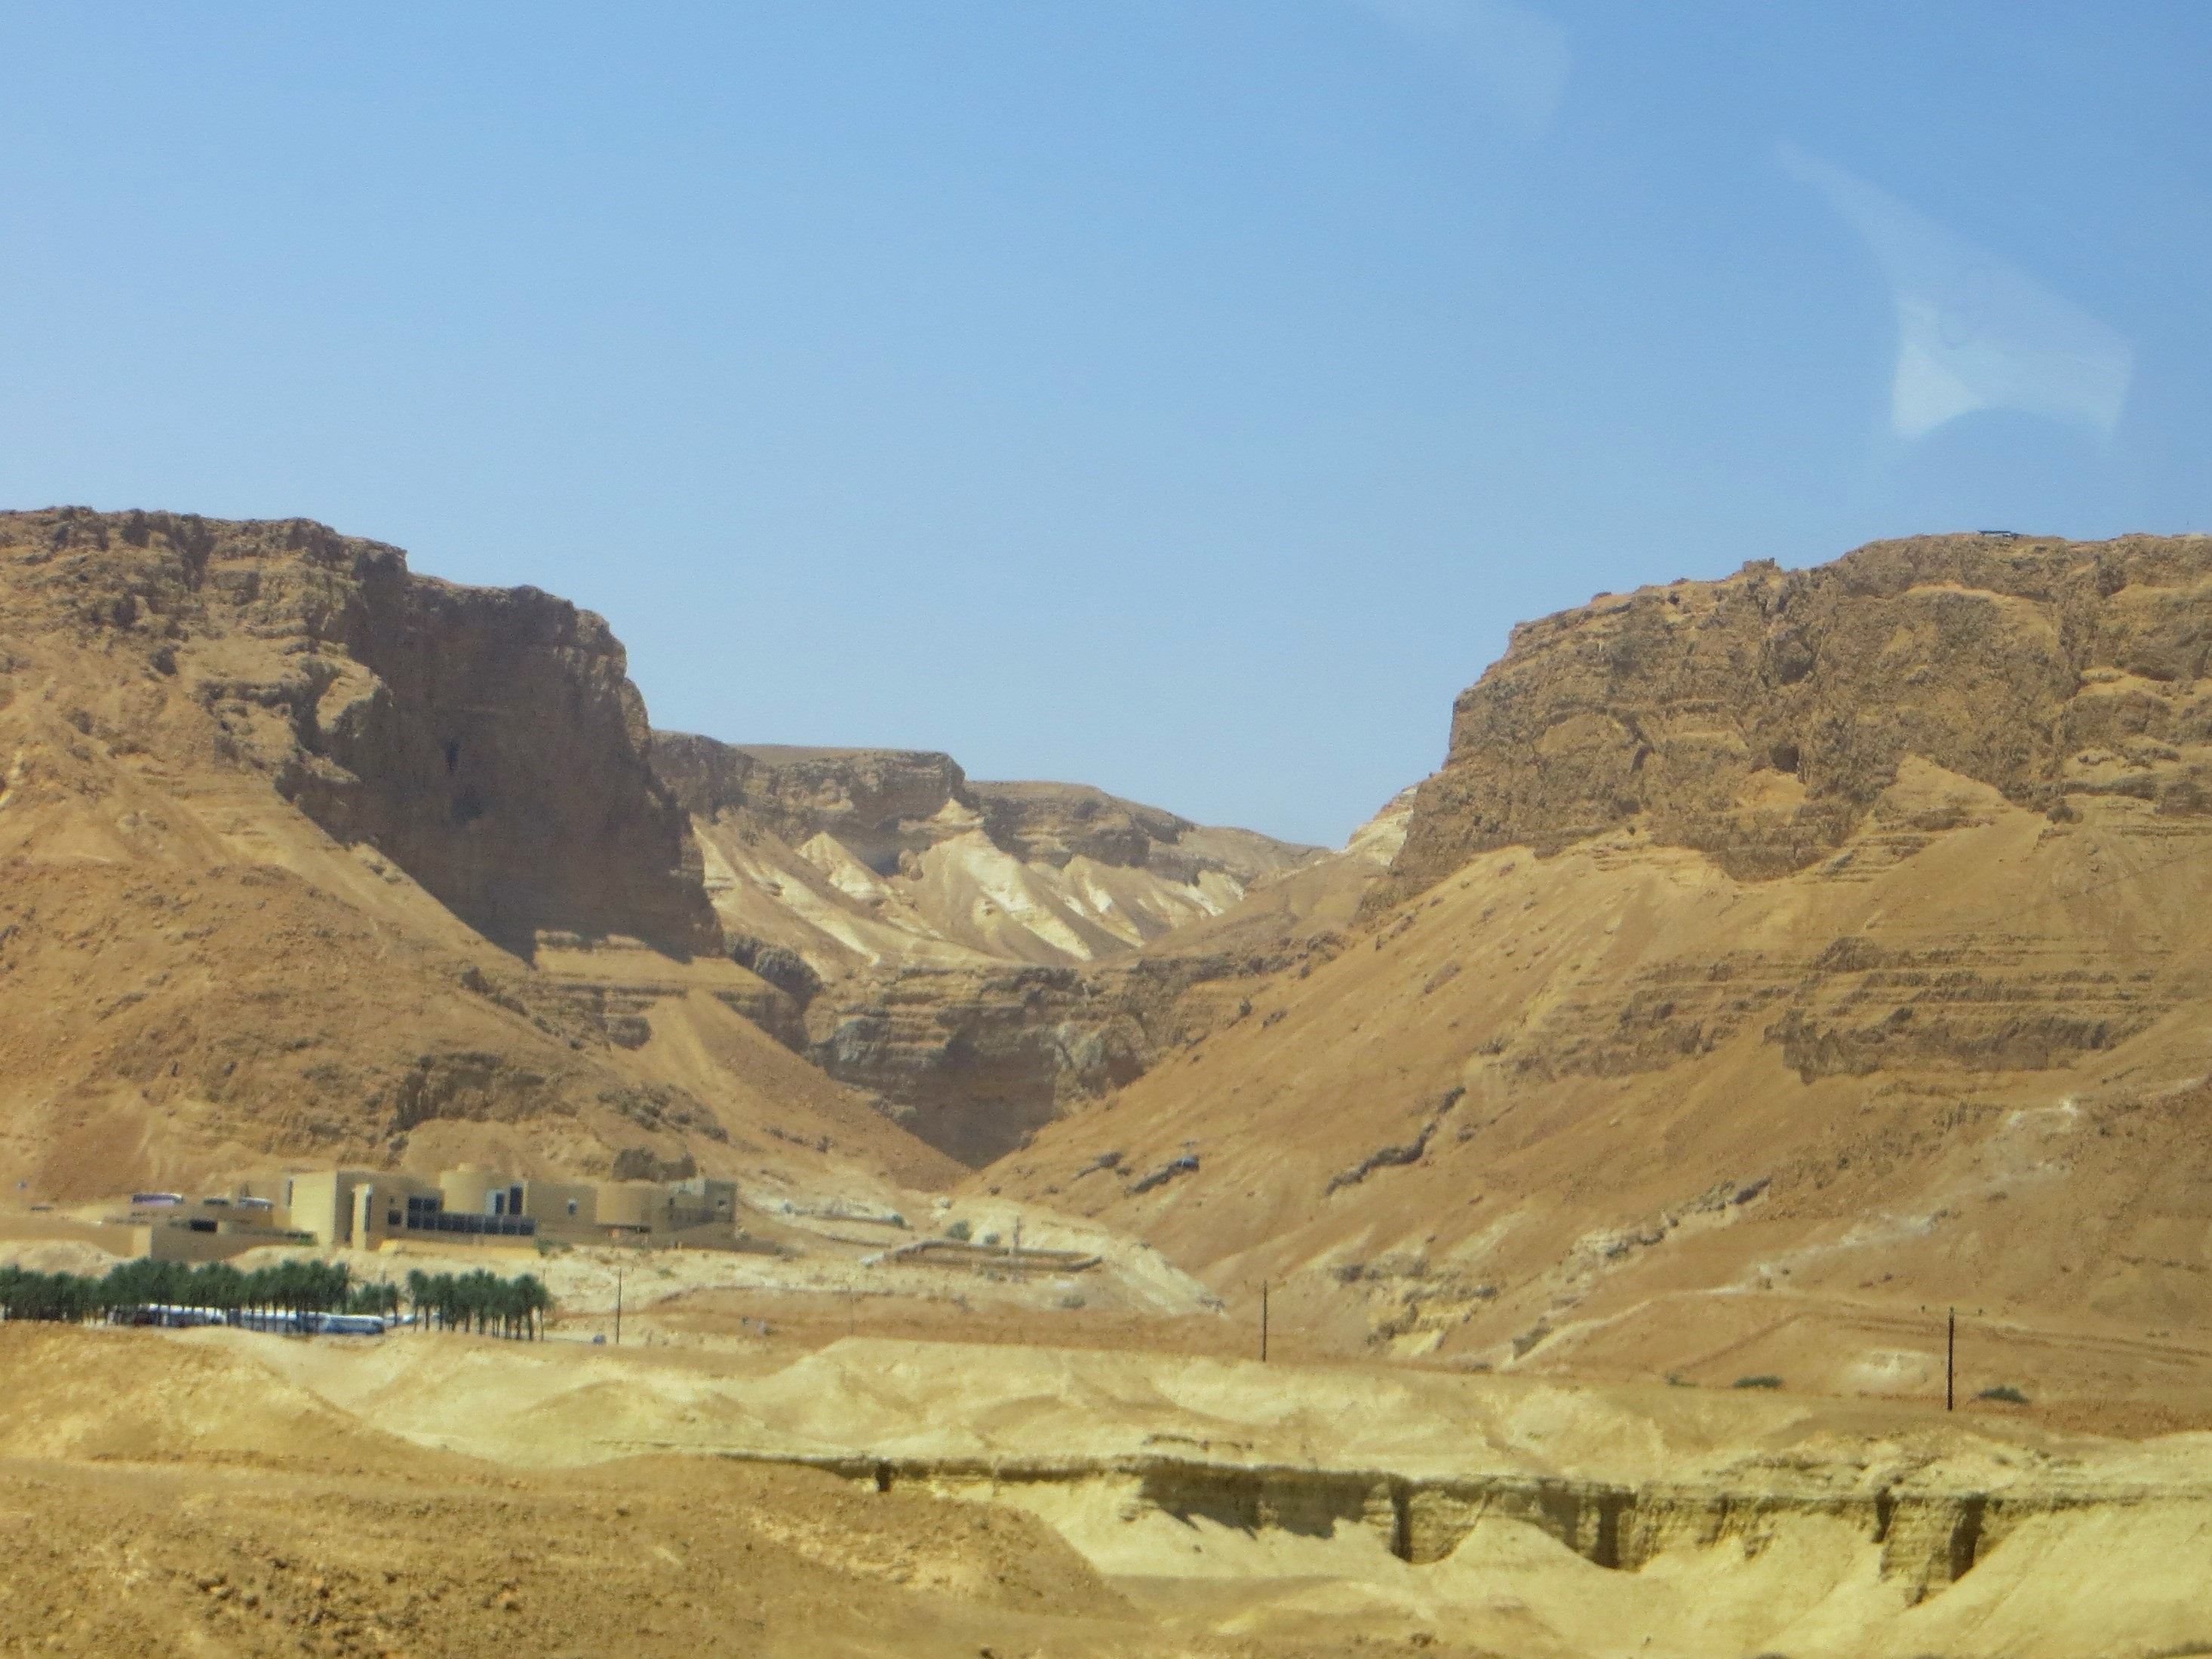 Masada, site of last Jewish rebel battle in 73 or 74 AD best IMG_8733